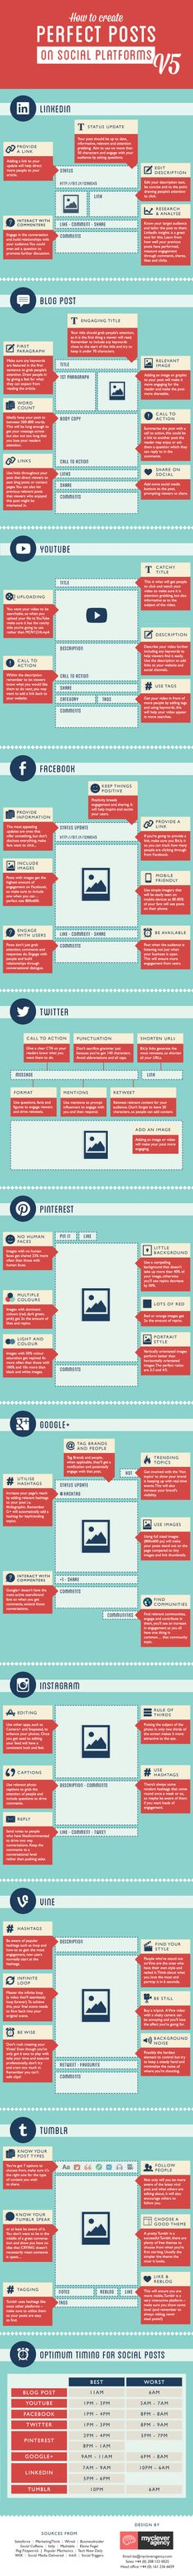 Cheat sheet for creating the best social media campaigns ever